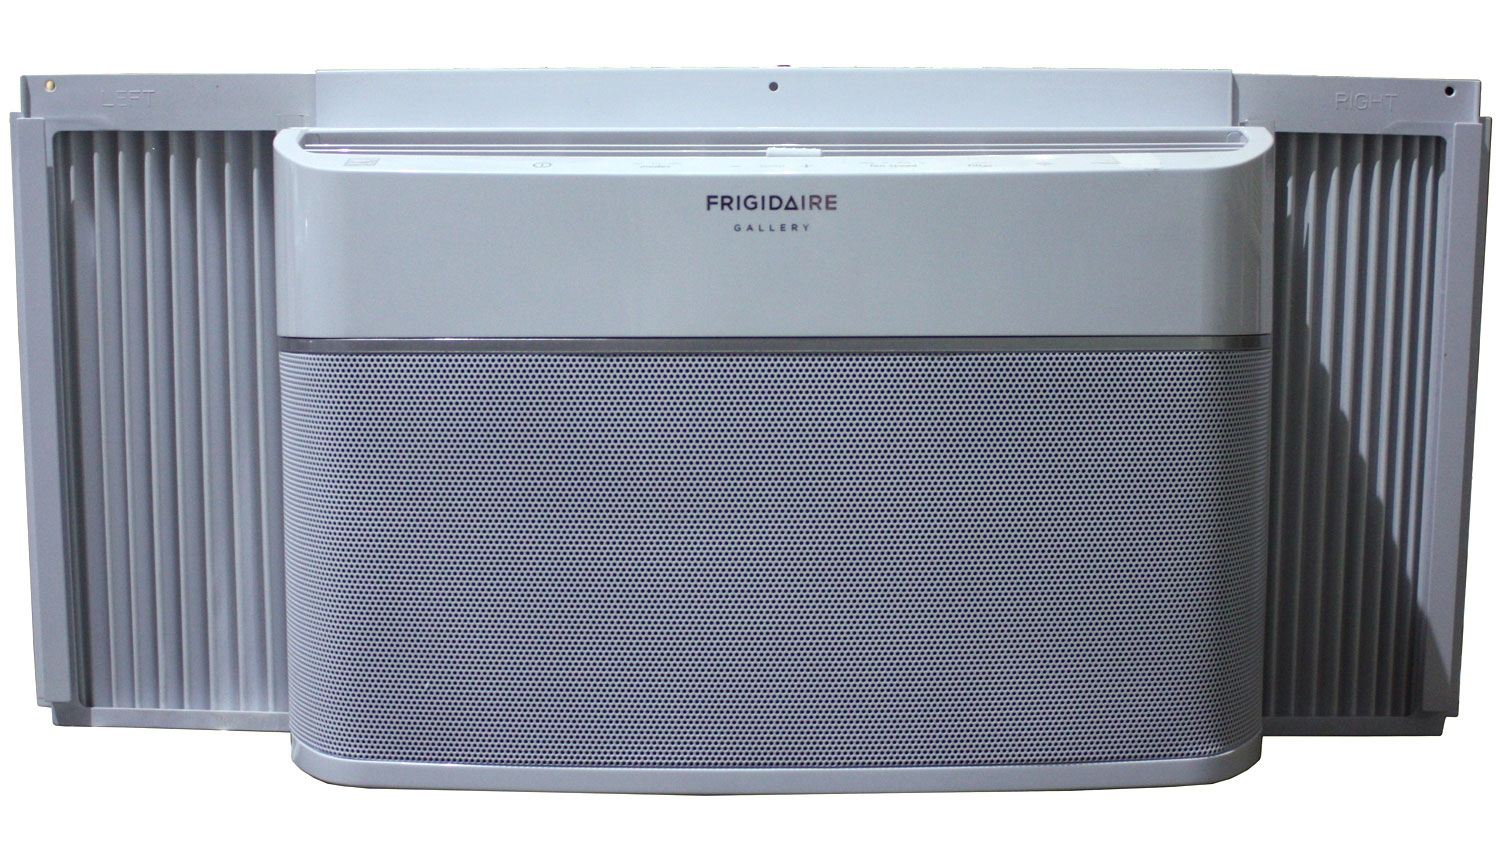 Frigidaire Gallery Window Air Conditioner Fgrc0844s1